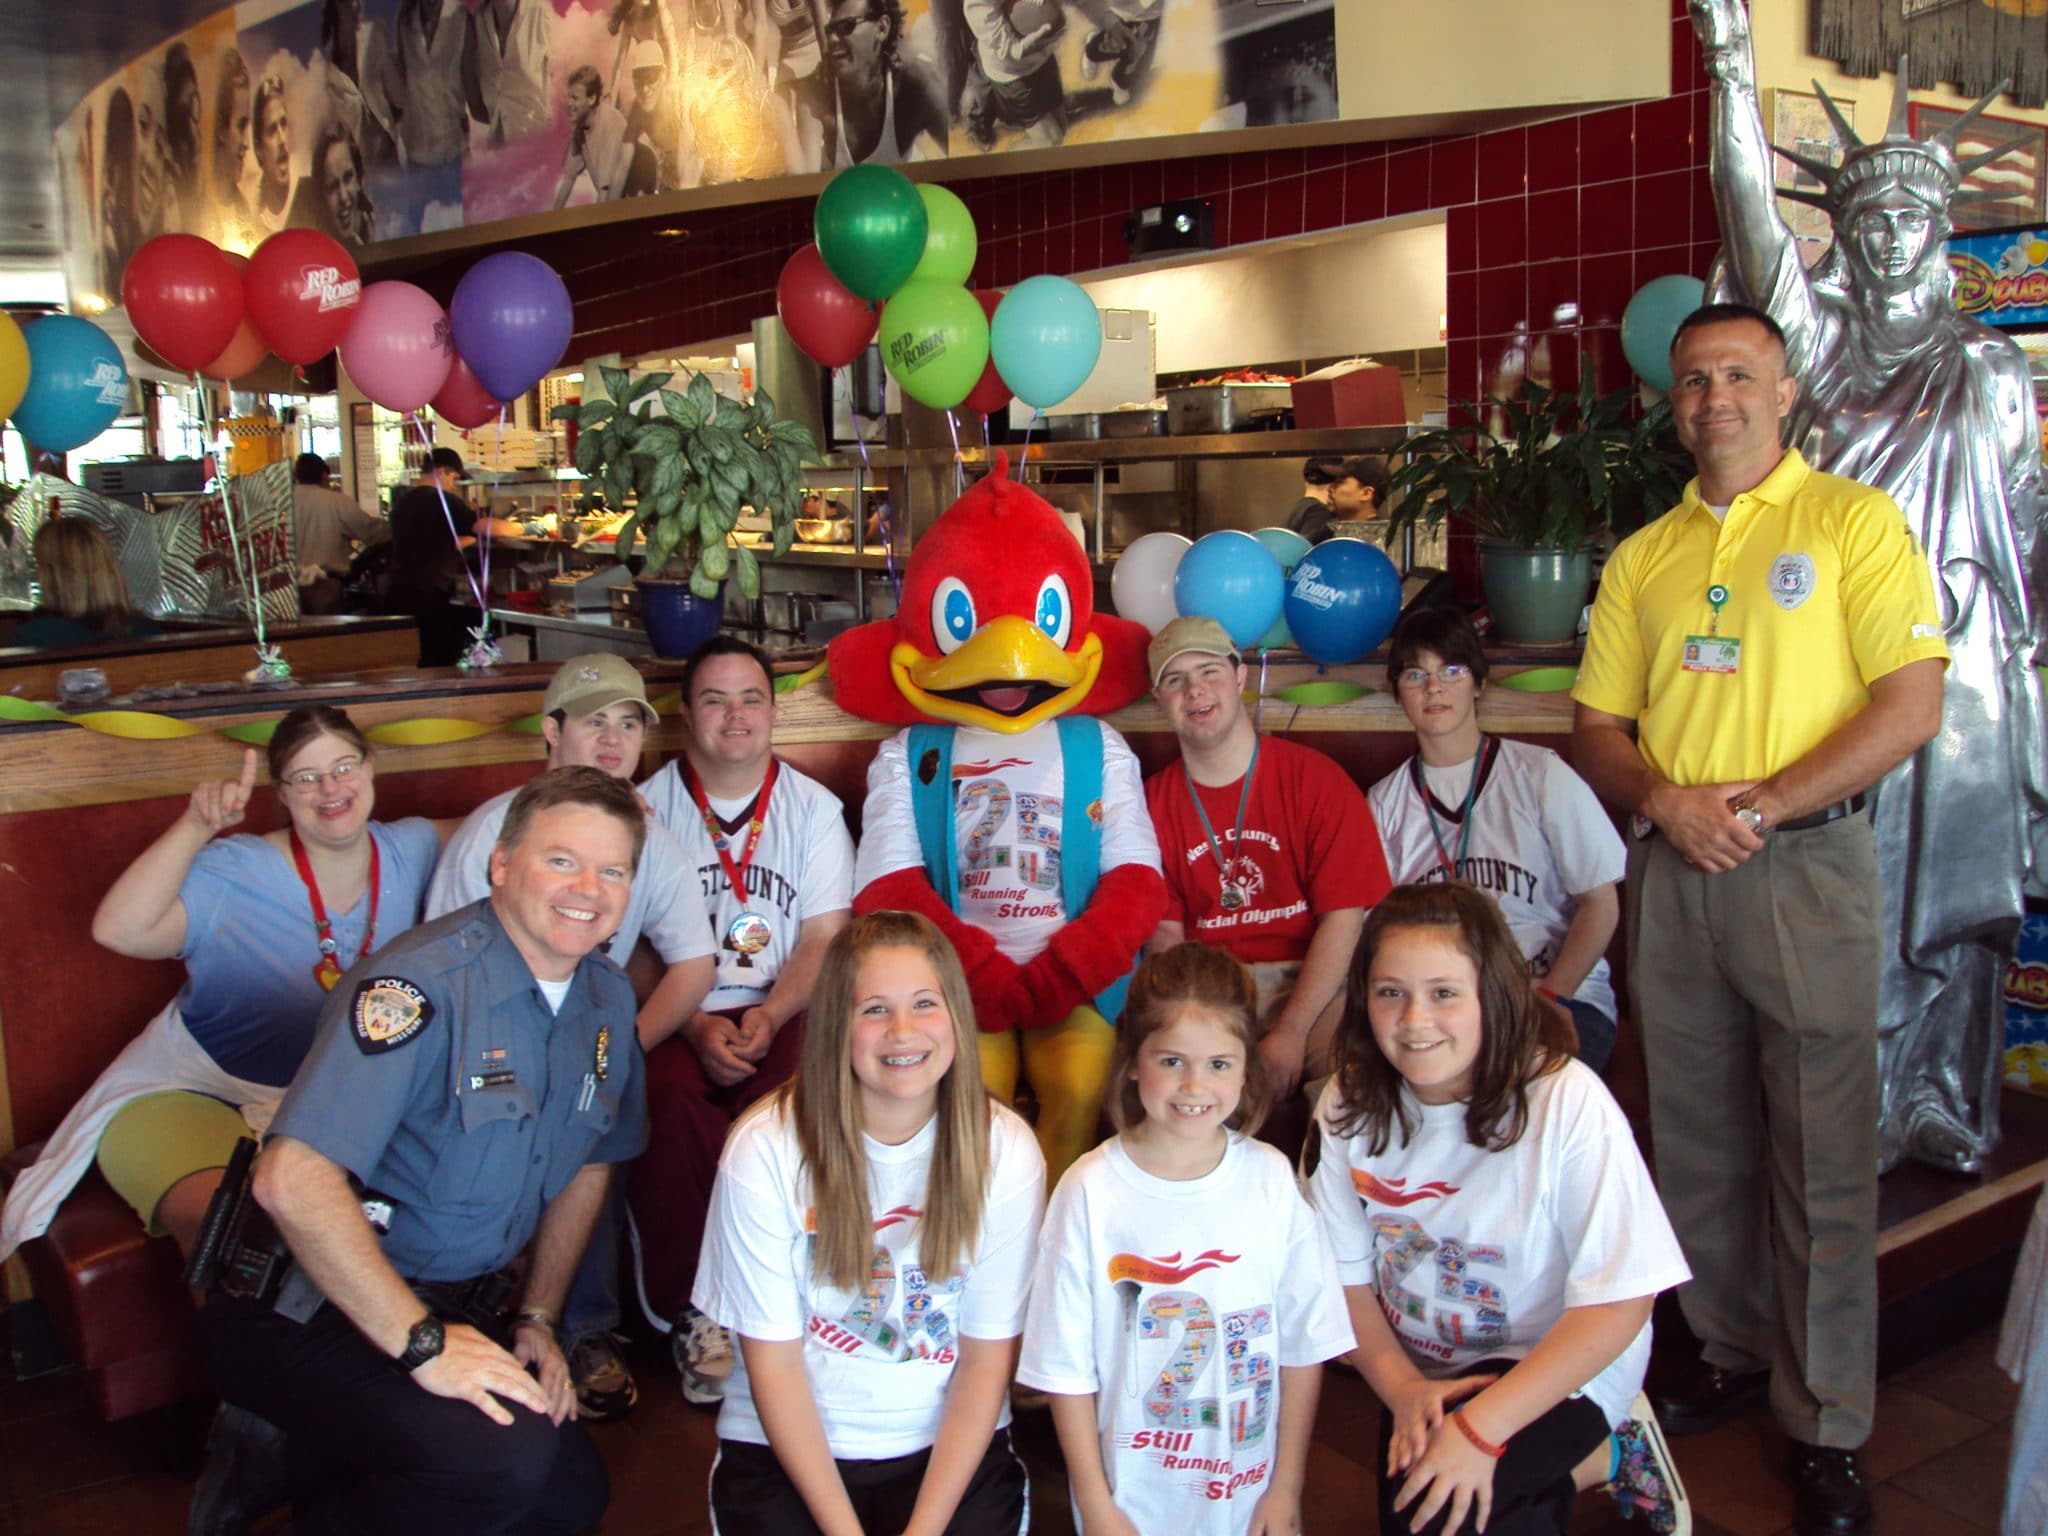 Athletes and law enforcement officers pose for a photo in a restaurant